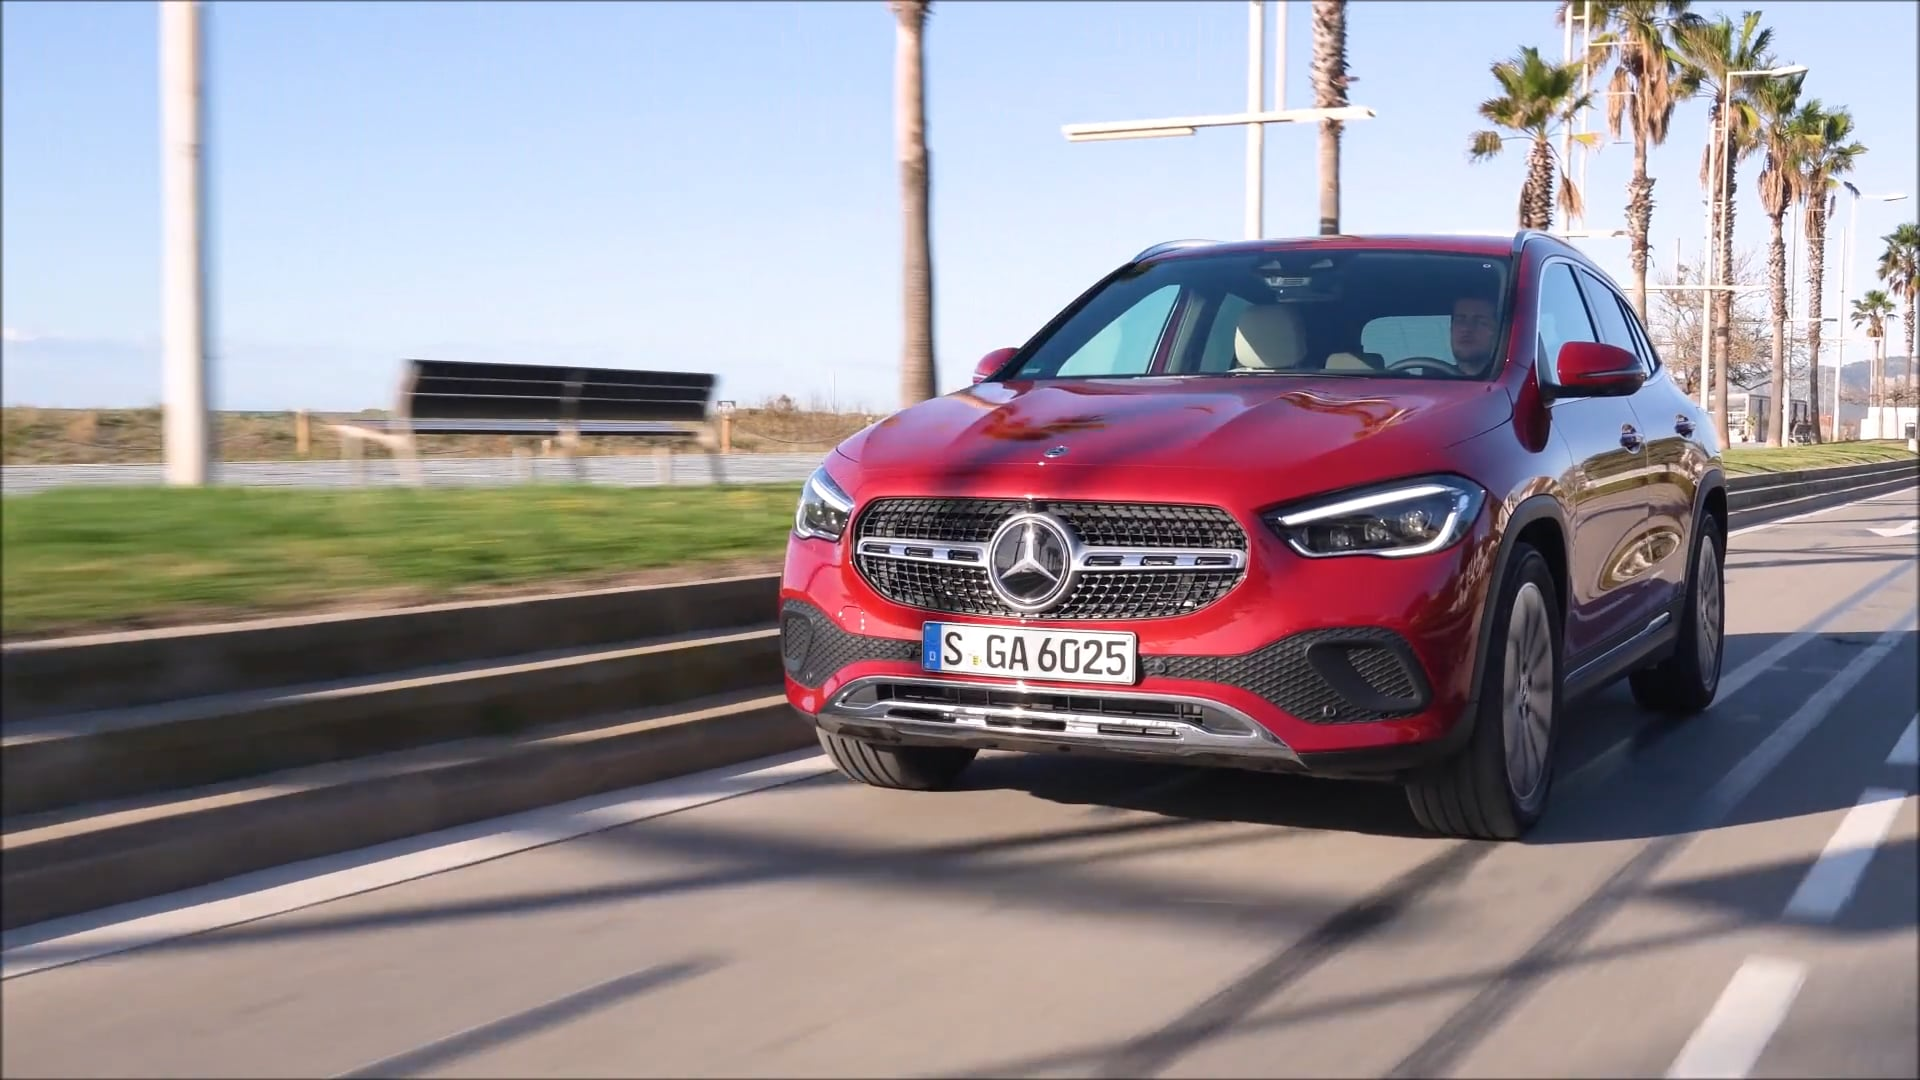 Overview: 2021 GLA 220 d 4MATIC (Patagonia Red)